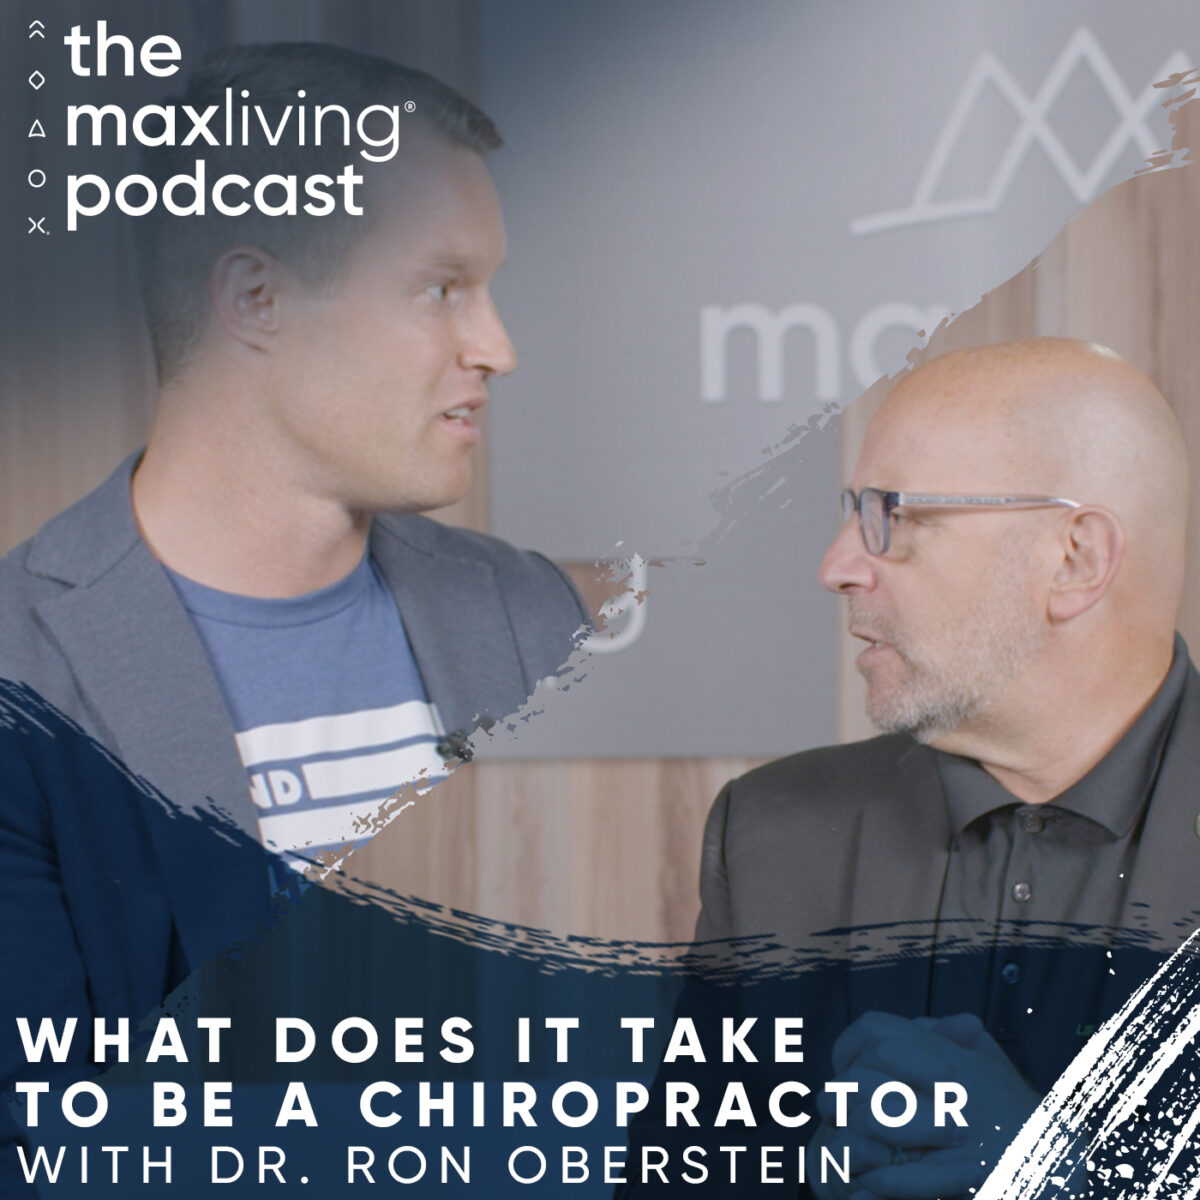 What Does It Take to Be a Chiropractor? with Dr. Ron Oberstein